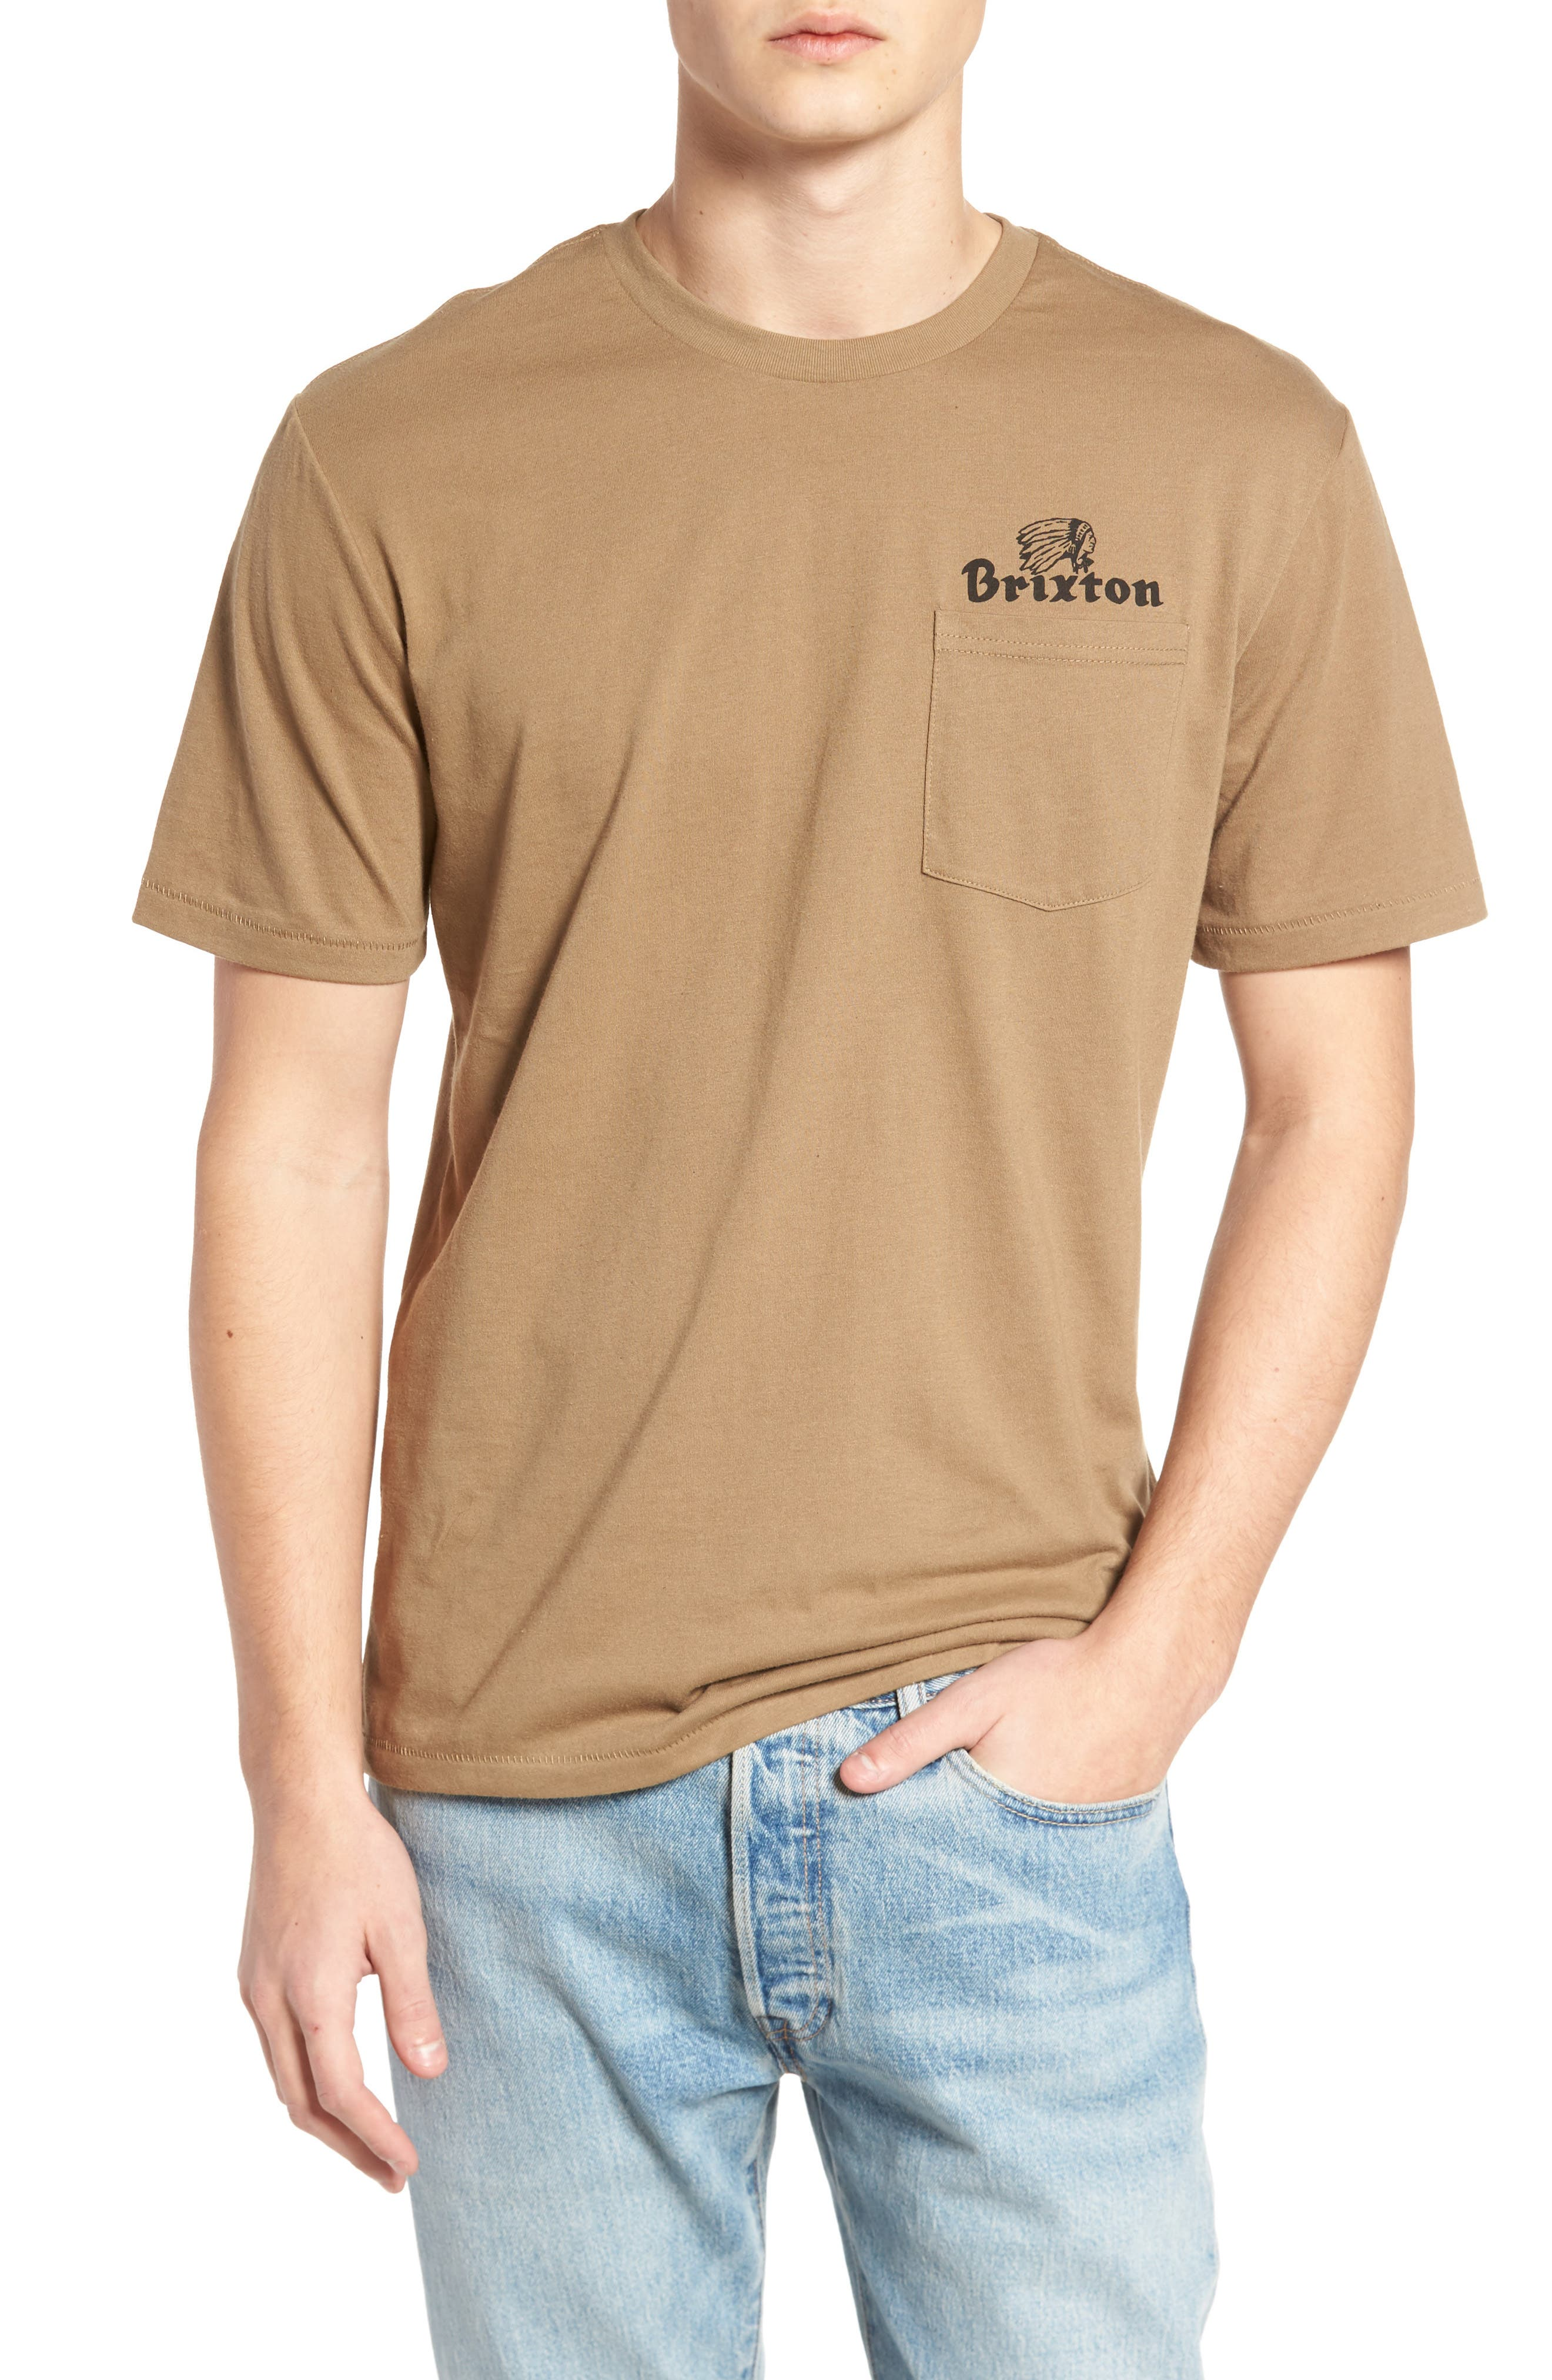 Tanka II Pocket T-Shirt,                         Main,                         color, Dusty Olive